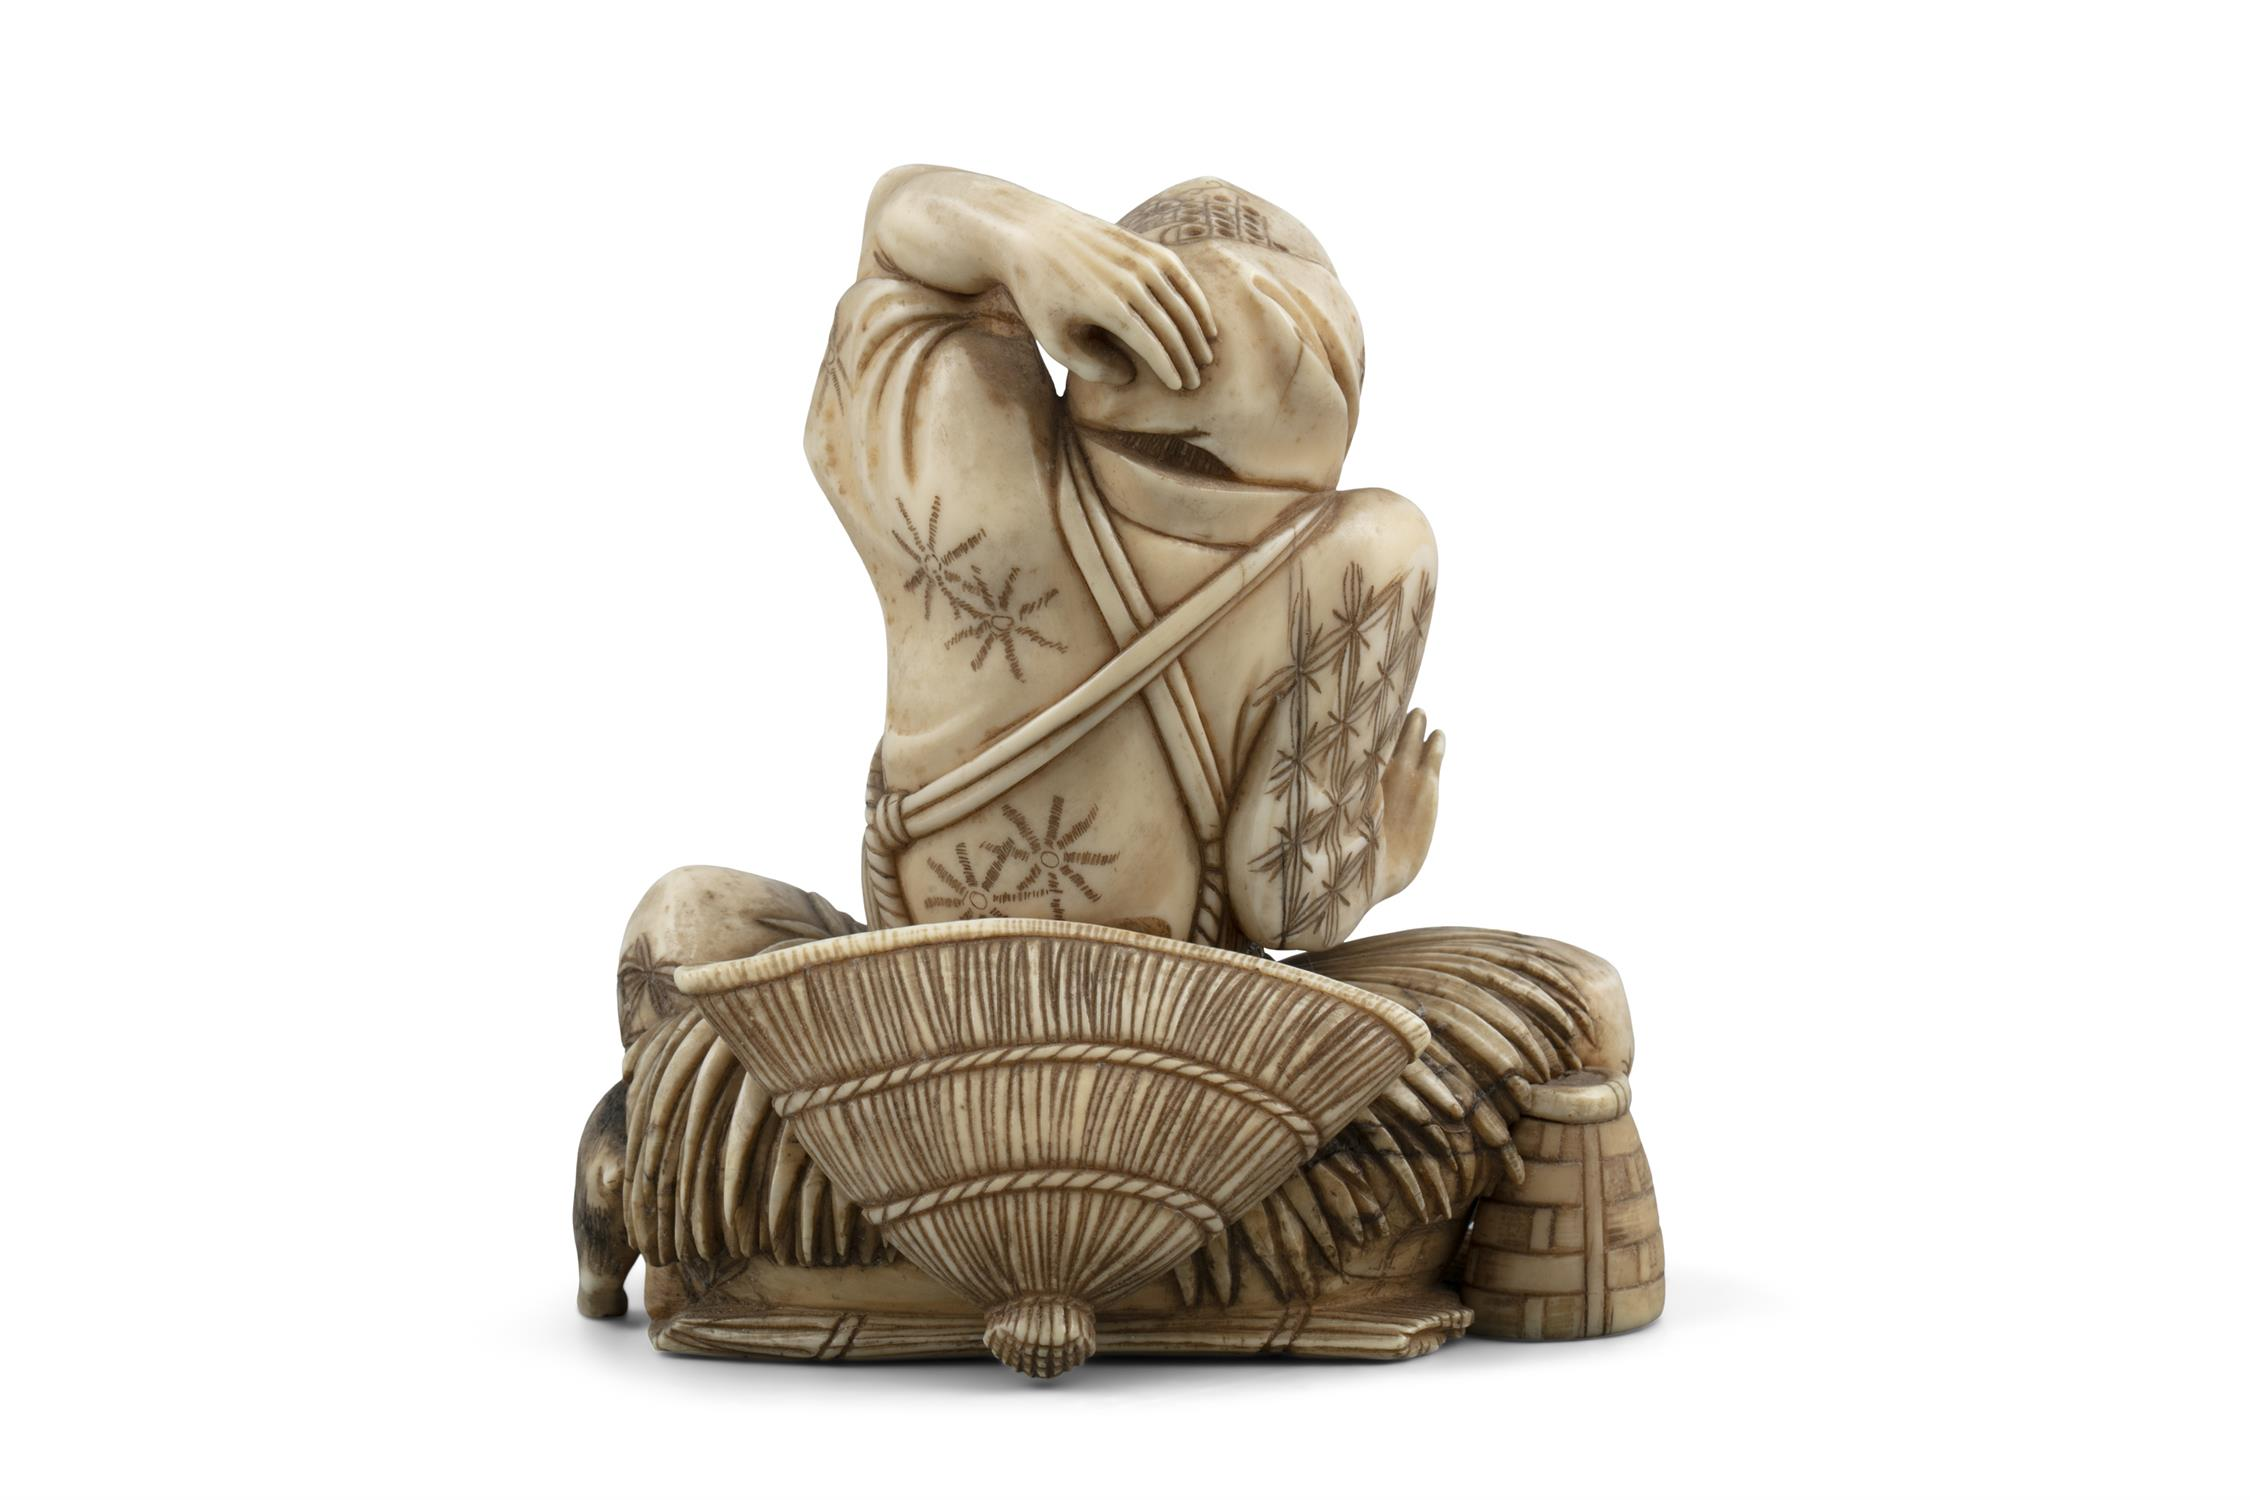 *MASAHIDE 正秀: A CARVED IVORY OKIMONO OF SCARED MAN WITH A CAT AND A SNAKE Japan, Meiji period, - Image 11 of 14